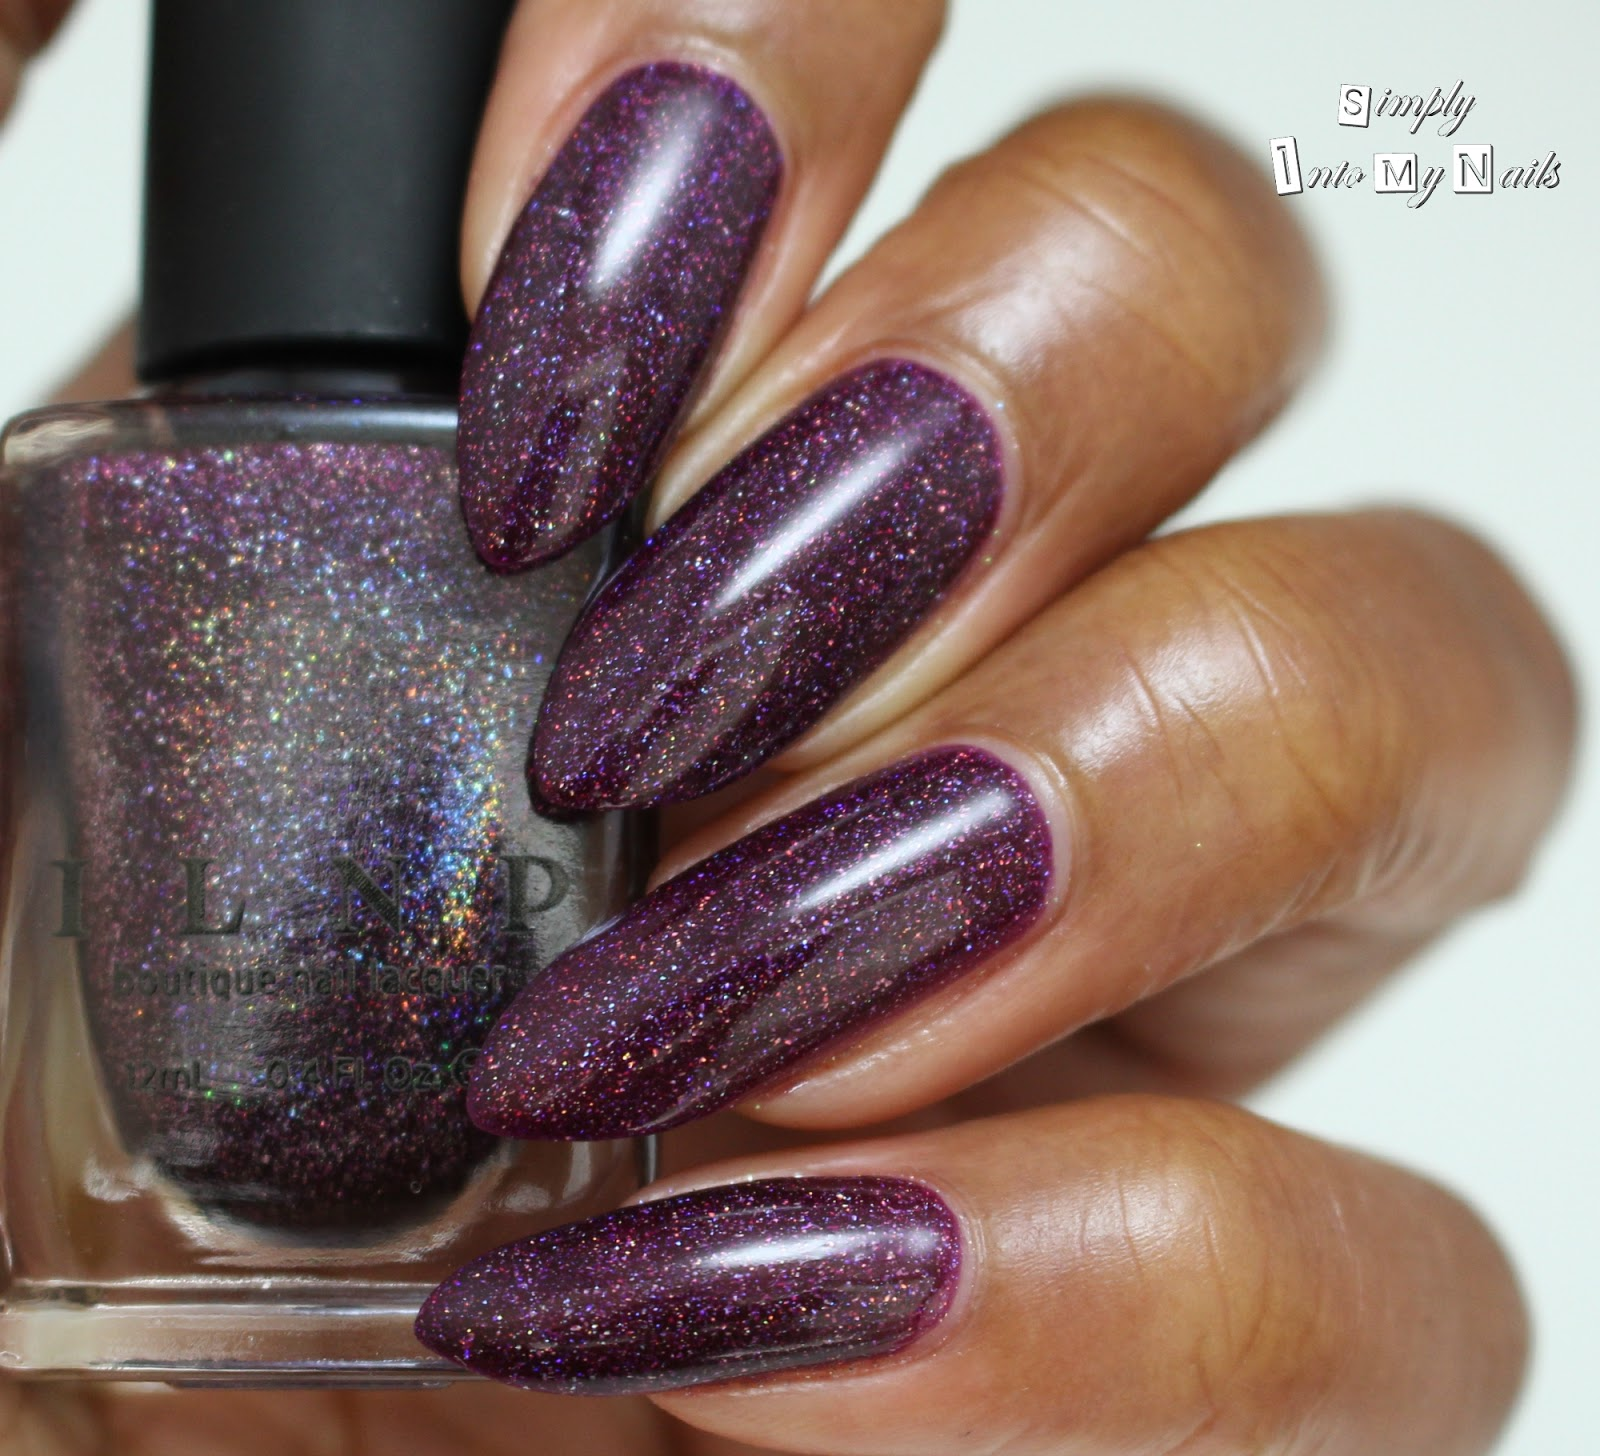 ILNP Fall 2015 Collection | Simply Into My NAILS